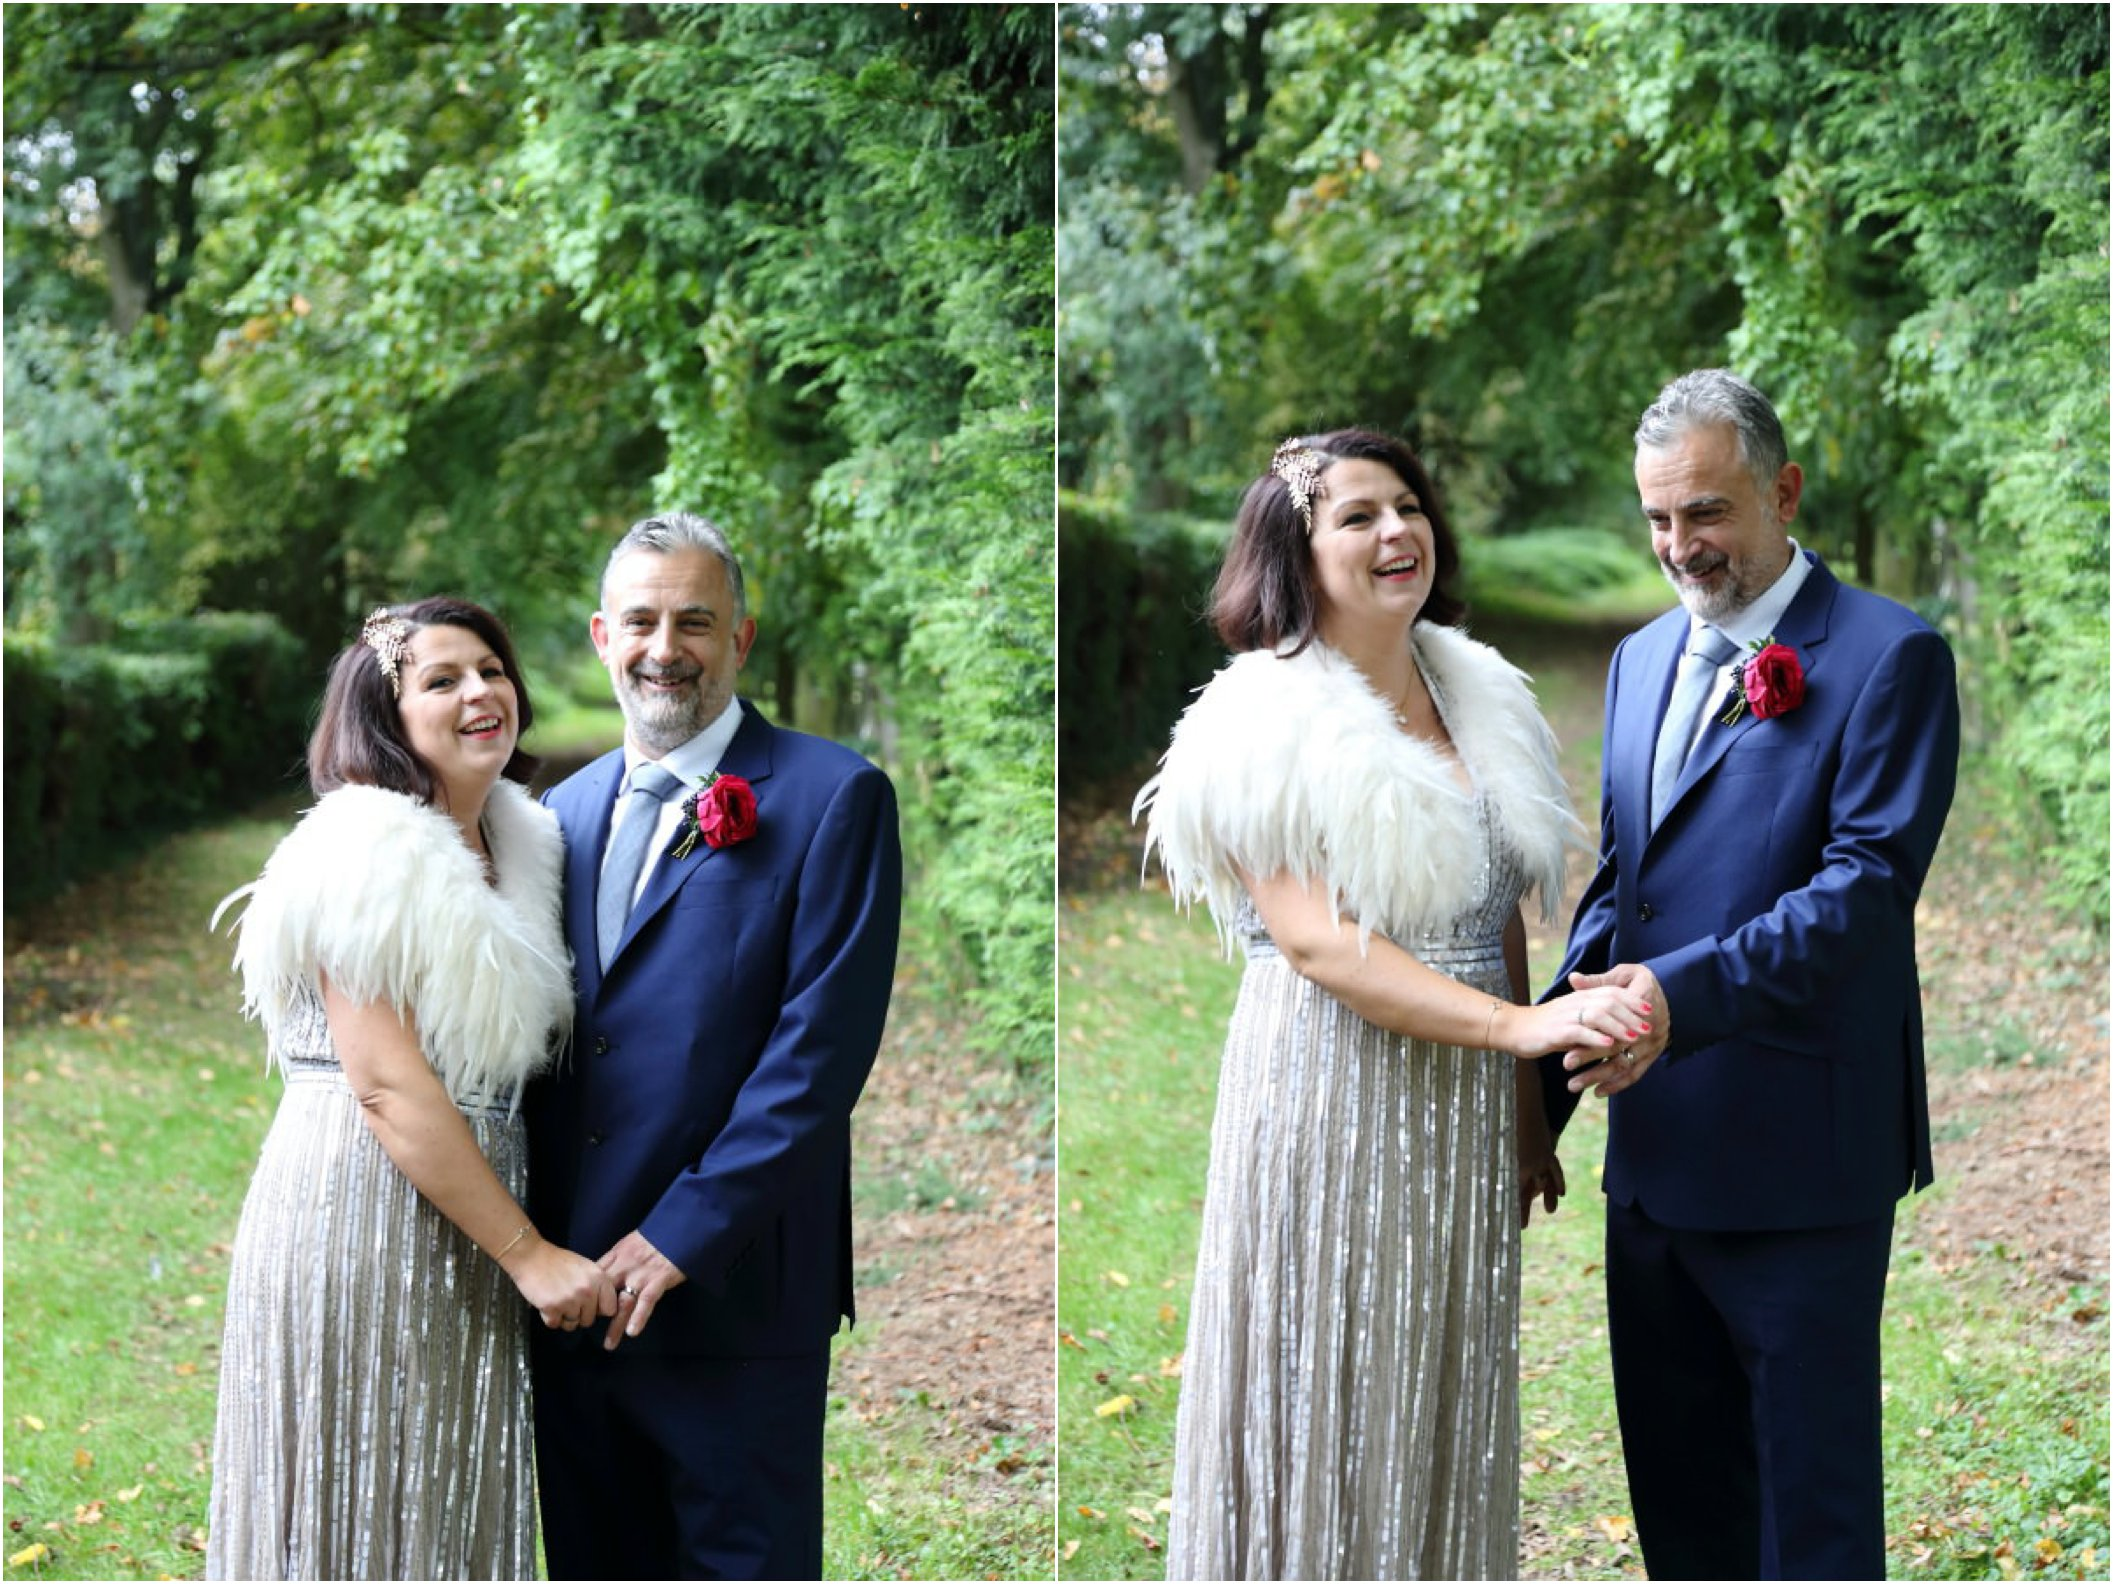 gorgeous, quirky couples portraits at manuden church, essex